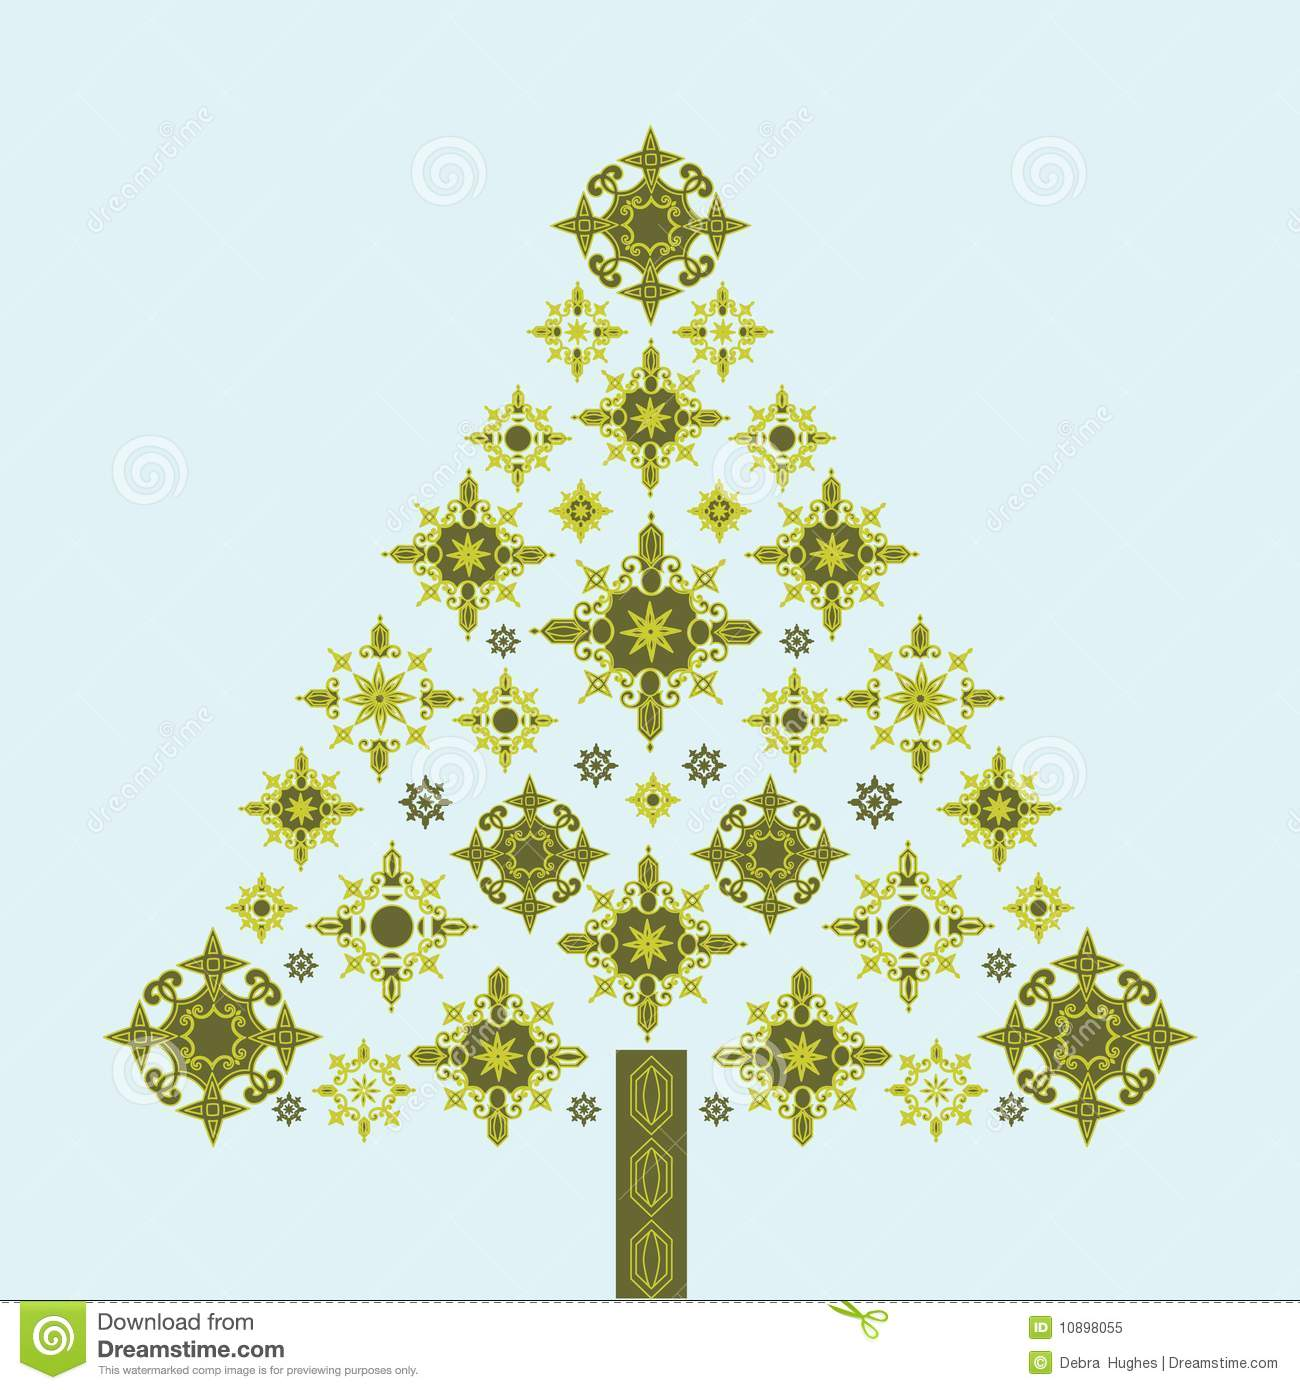 Celtic Christmas Tree Royalty Free Stock Photography - Image: 27827977